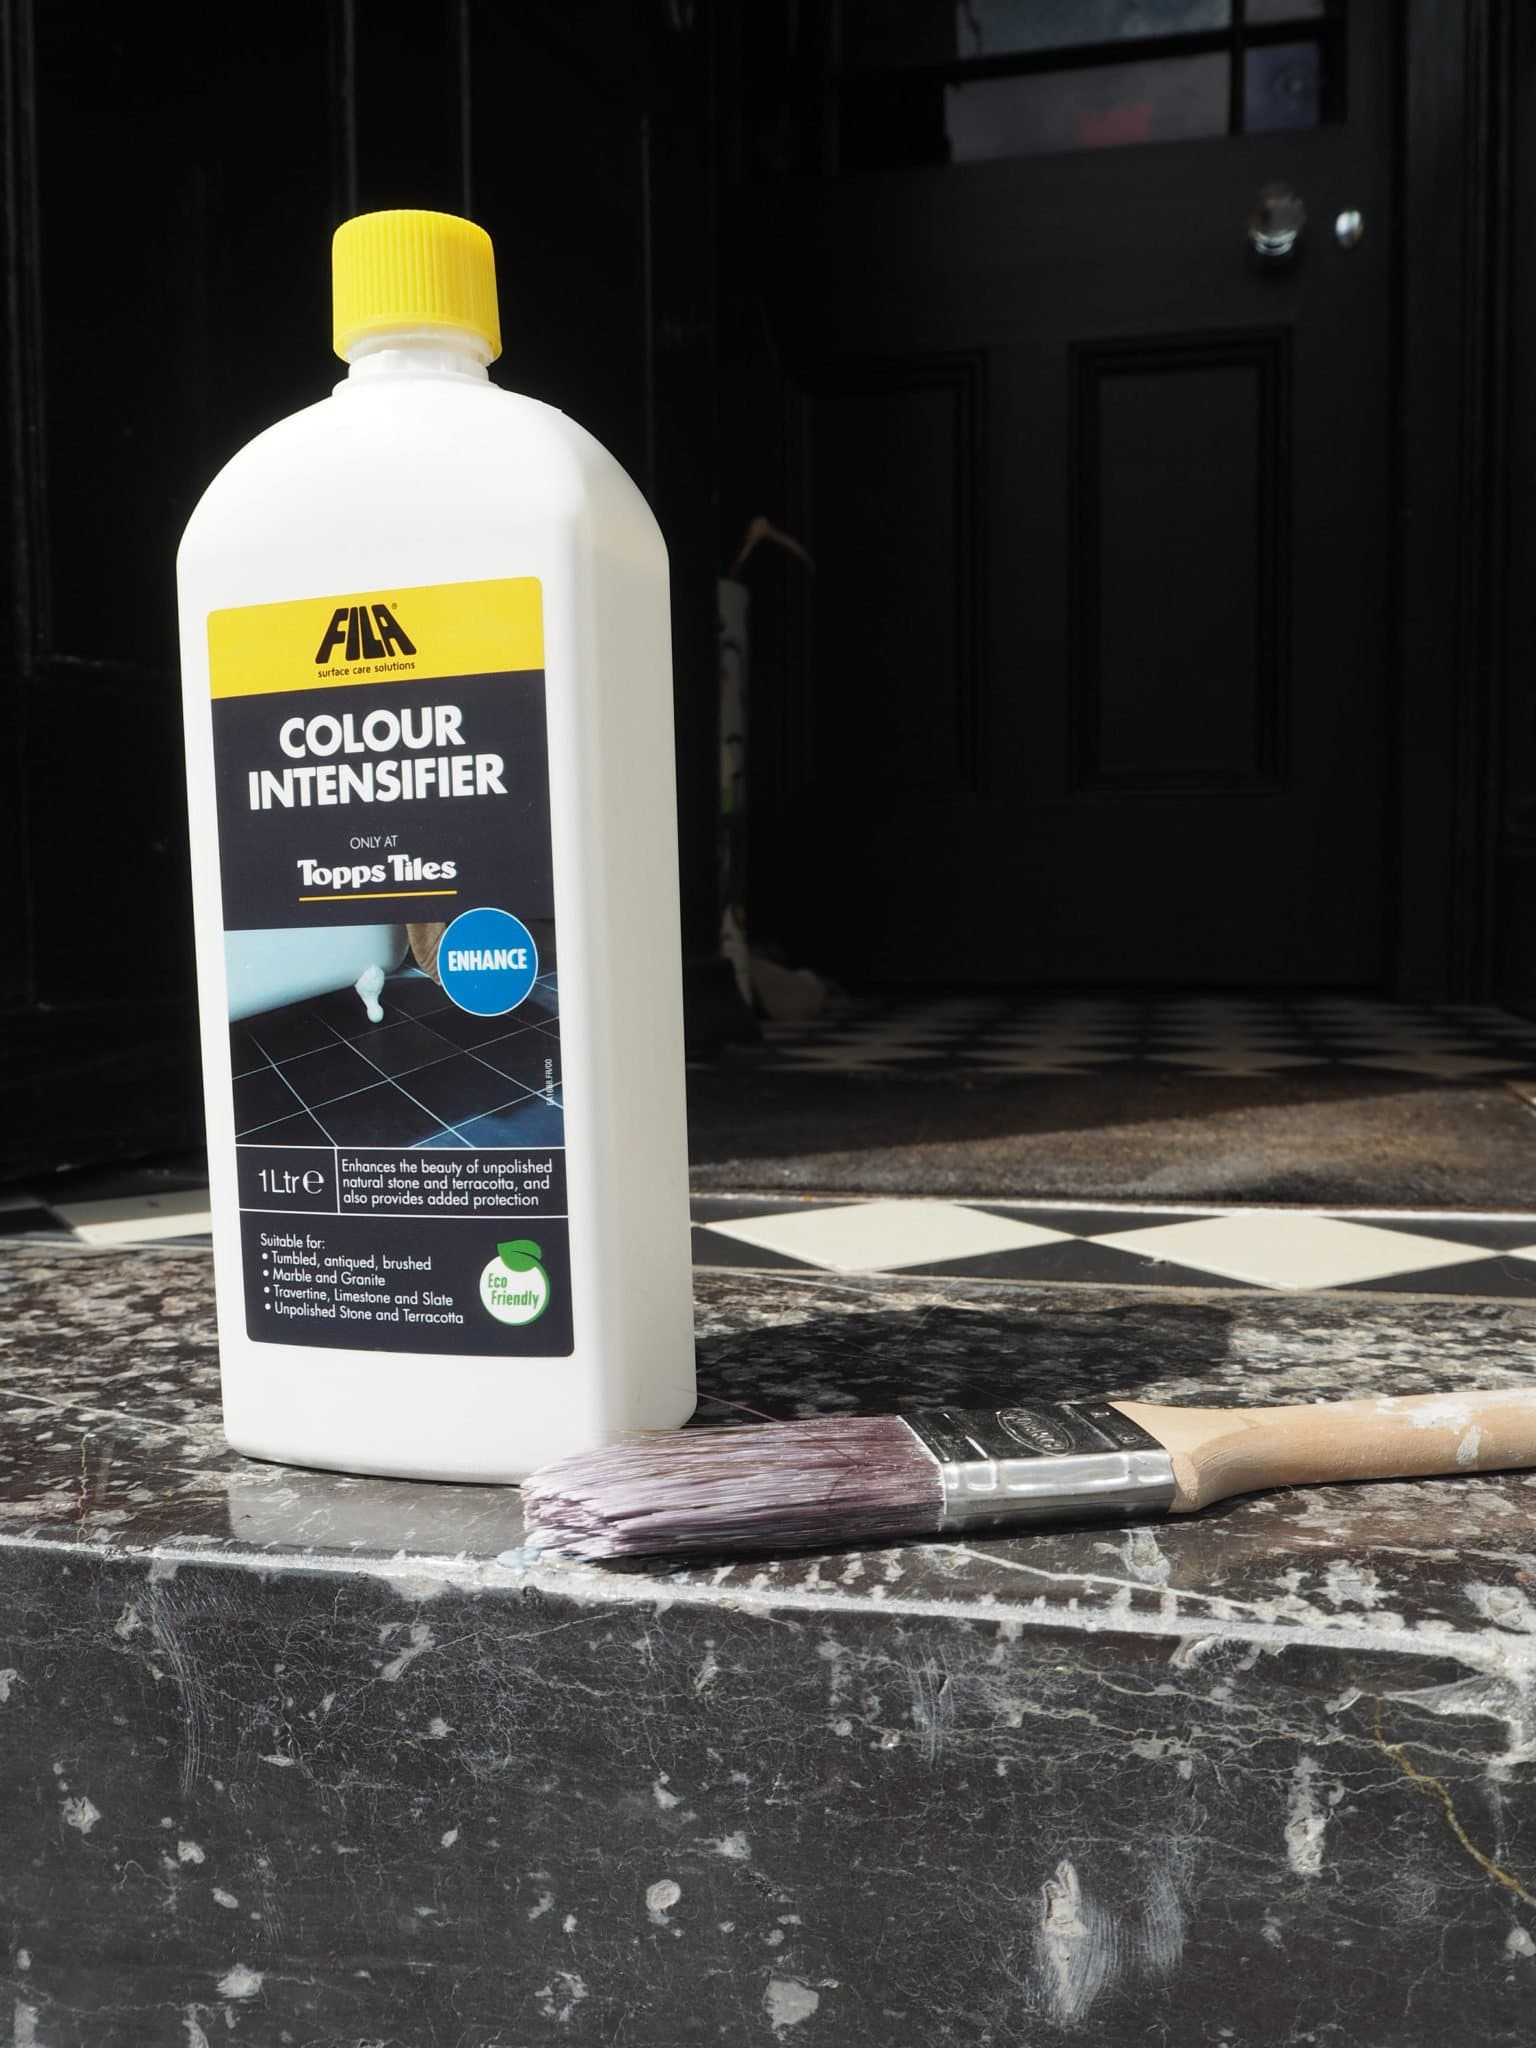 Sealing Marble or Limestone to protect and intensify colour